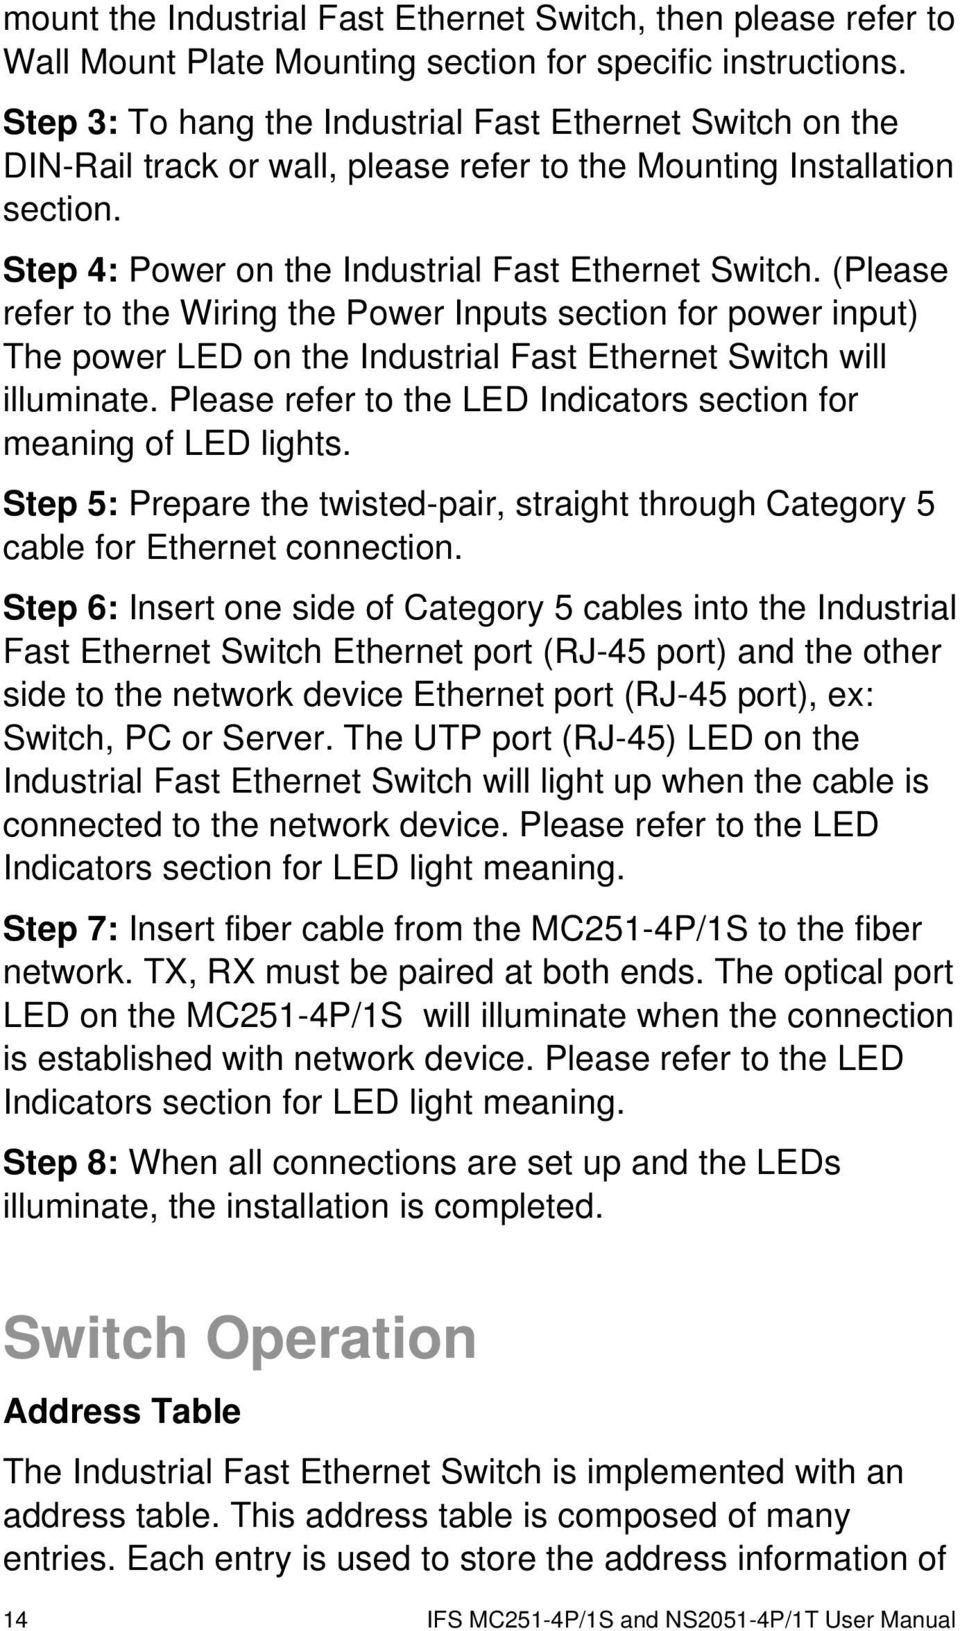 (Please refer to the Wiring the Power Inputs section for power input) The power LED on the Industrial Fast Ethernet Switch will illuminate.